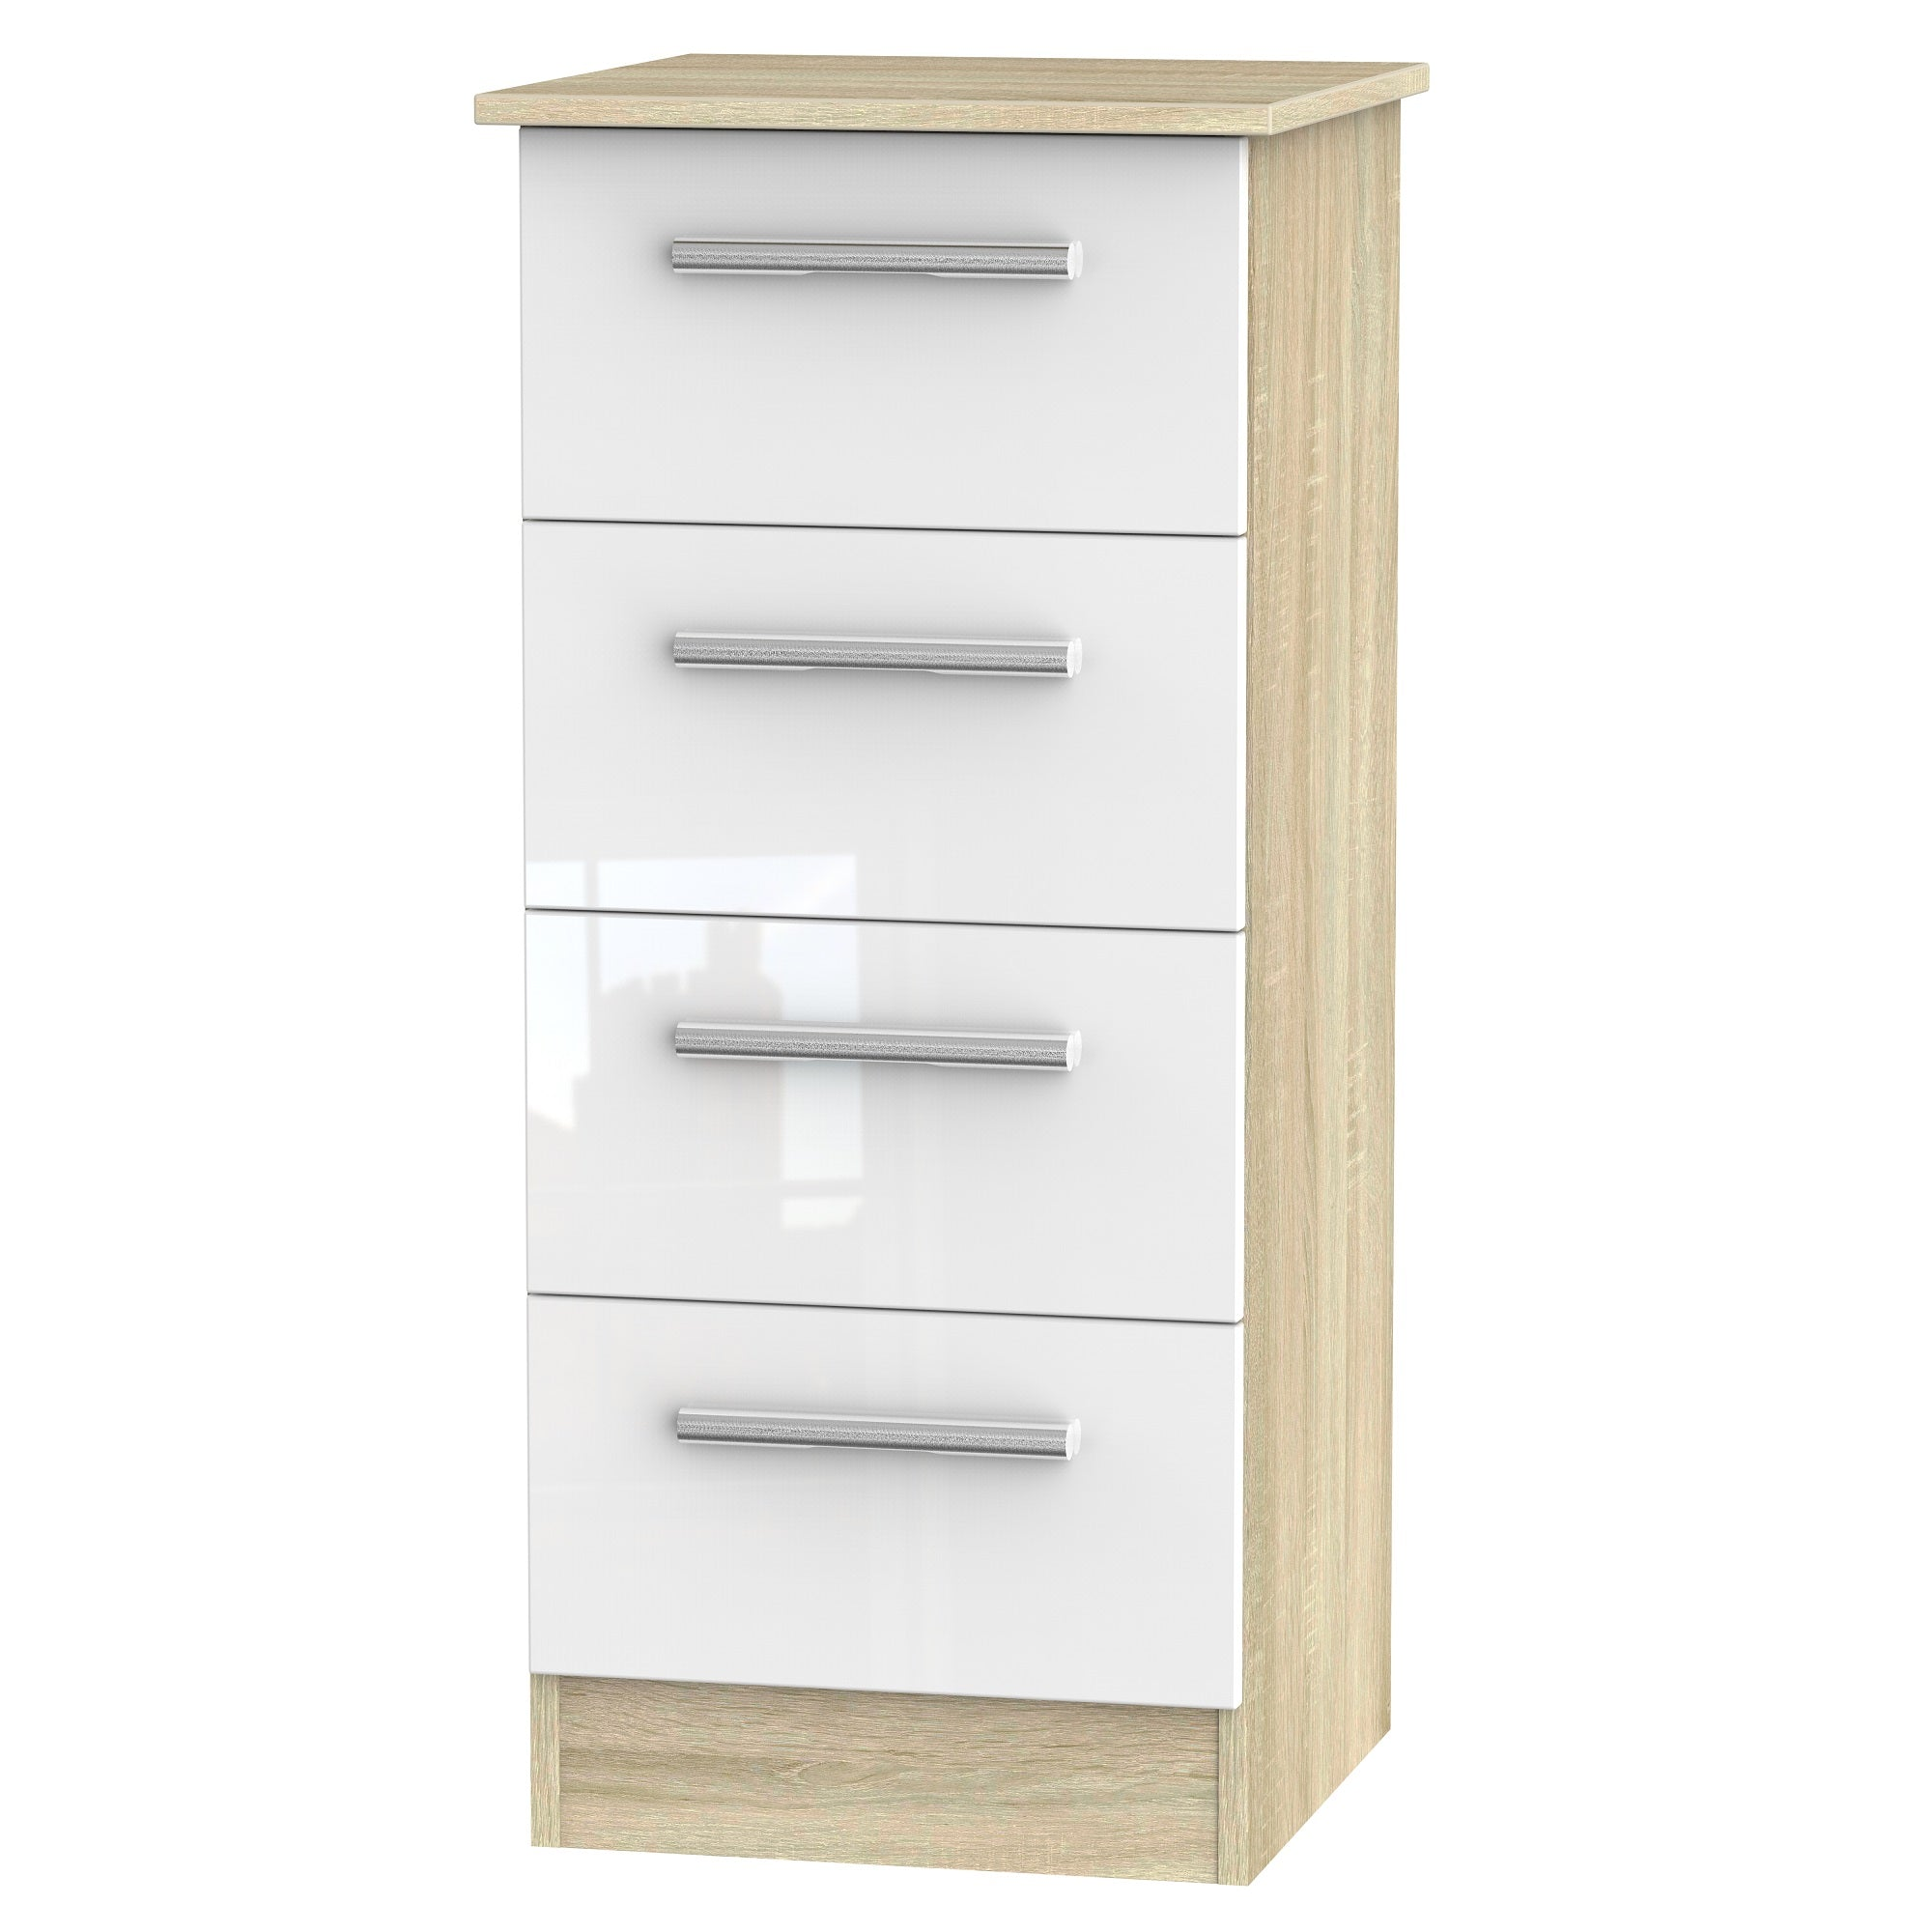 Cheap and Cheerful Slim Chests of Drawers In White Gloss and Oak